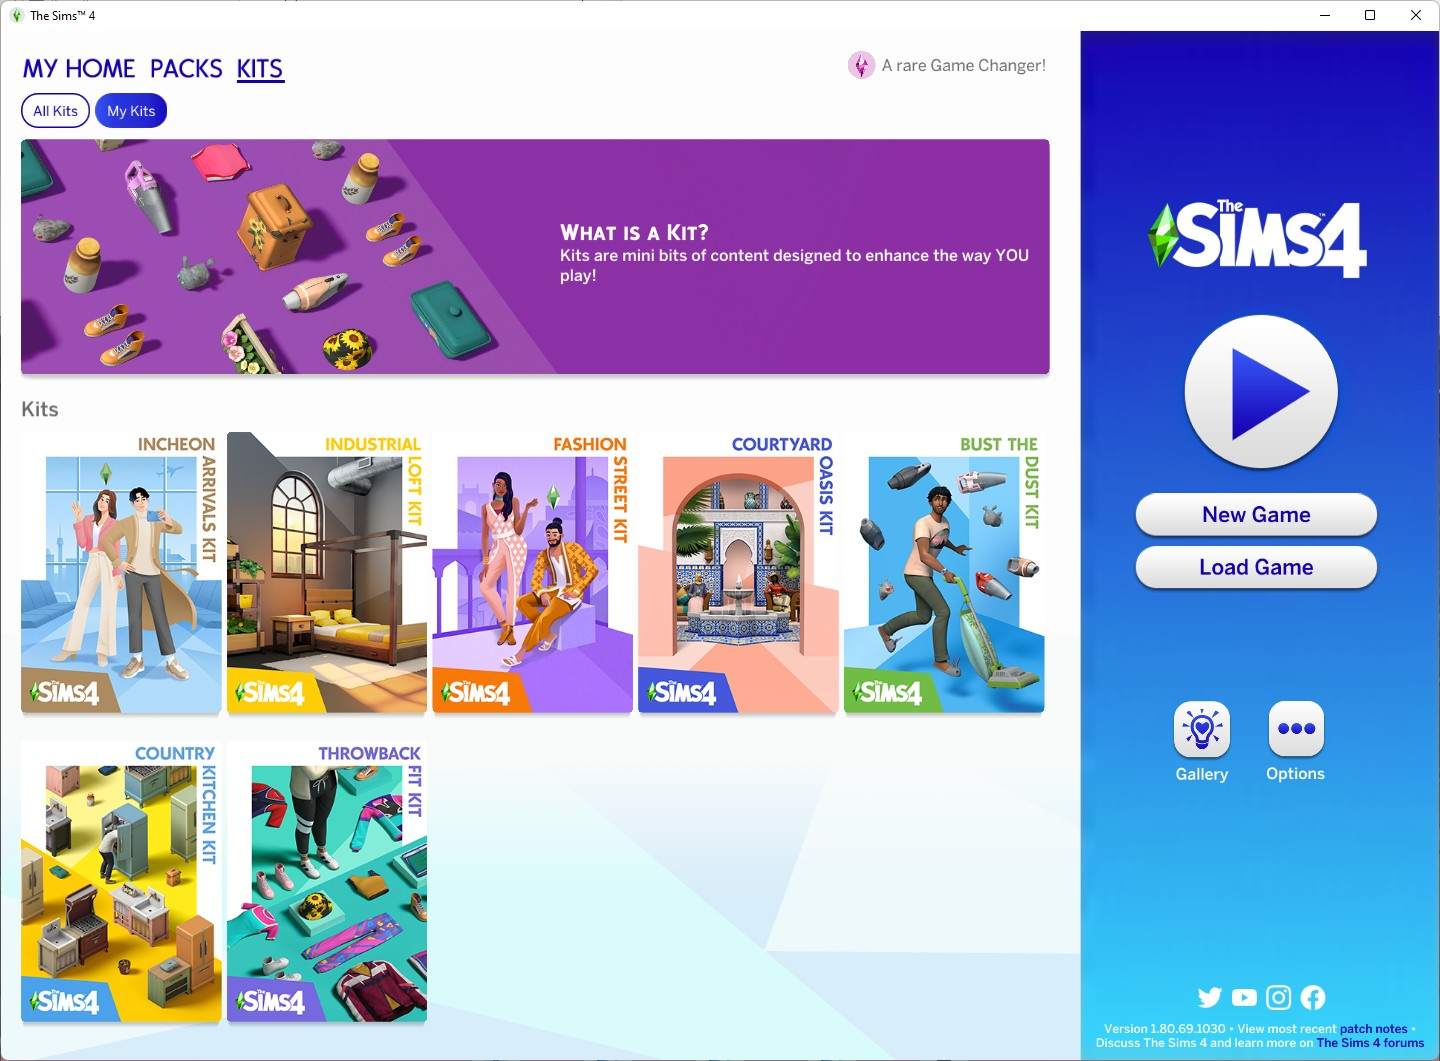 The Sims 4 1.80.69.1030 with Fashion Street and Incheon Arrivals Kits